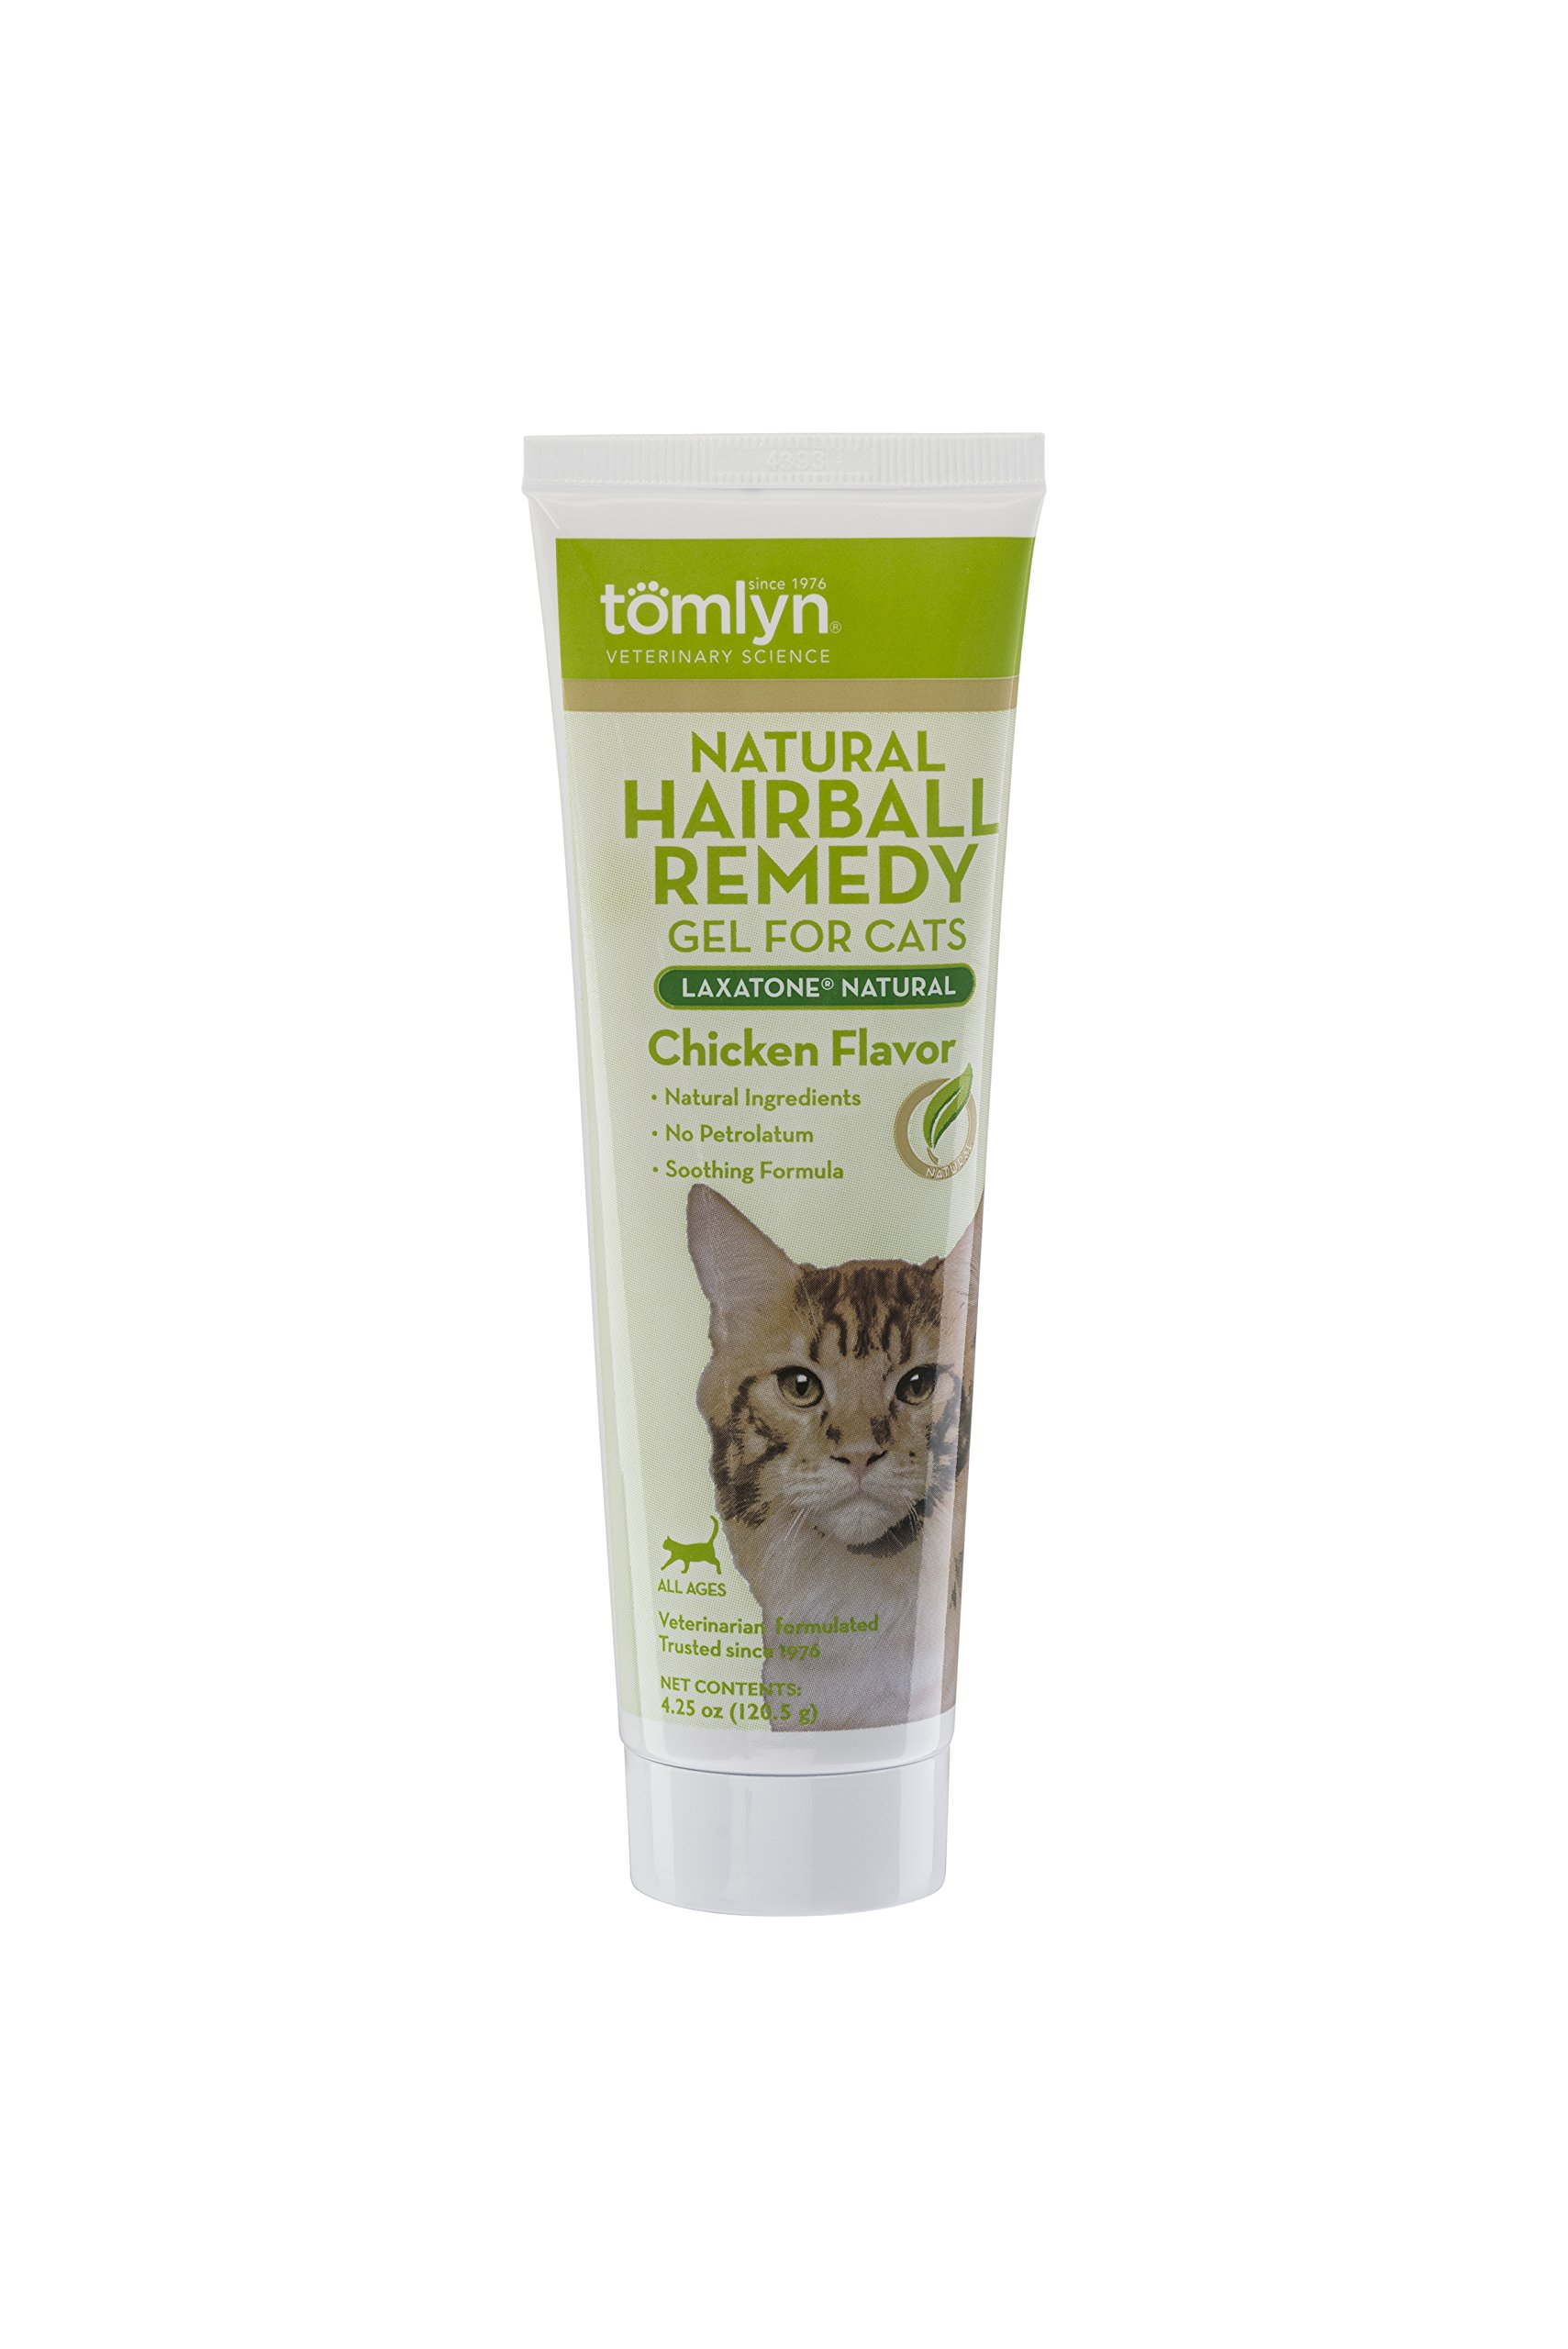 Tomlyn Natural Hairball Remedy Gel for Cats, Chicken Flavor, (LaxatoneNatural) 4.25 oz